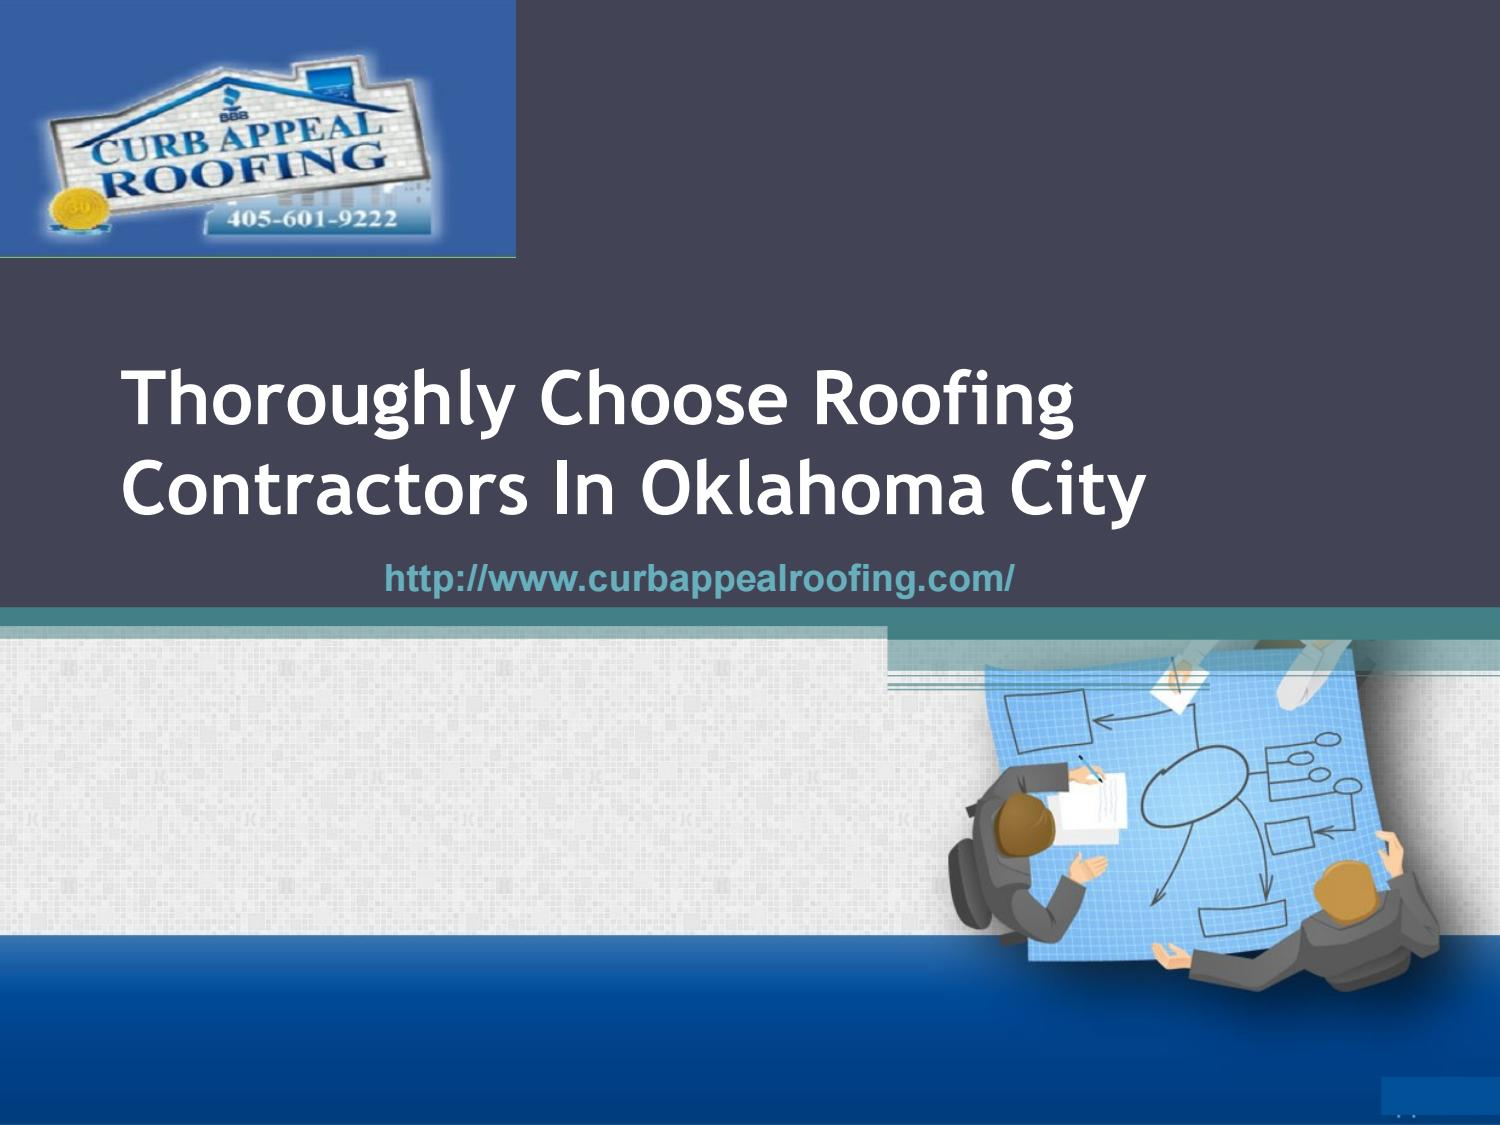 Thoroughly Choose Roofing Contractors In Oklahoma City By Fred Lydick    Issuu